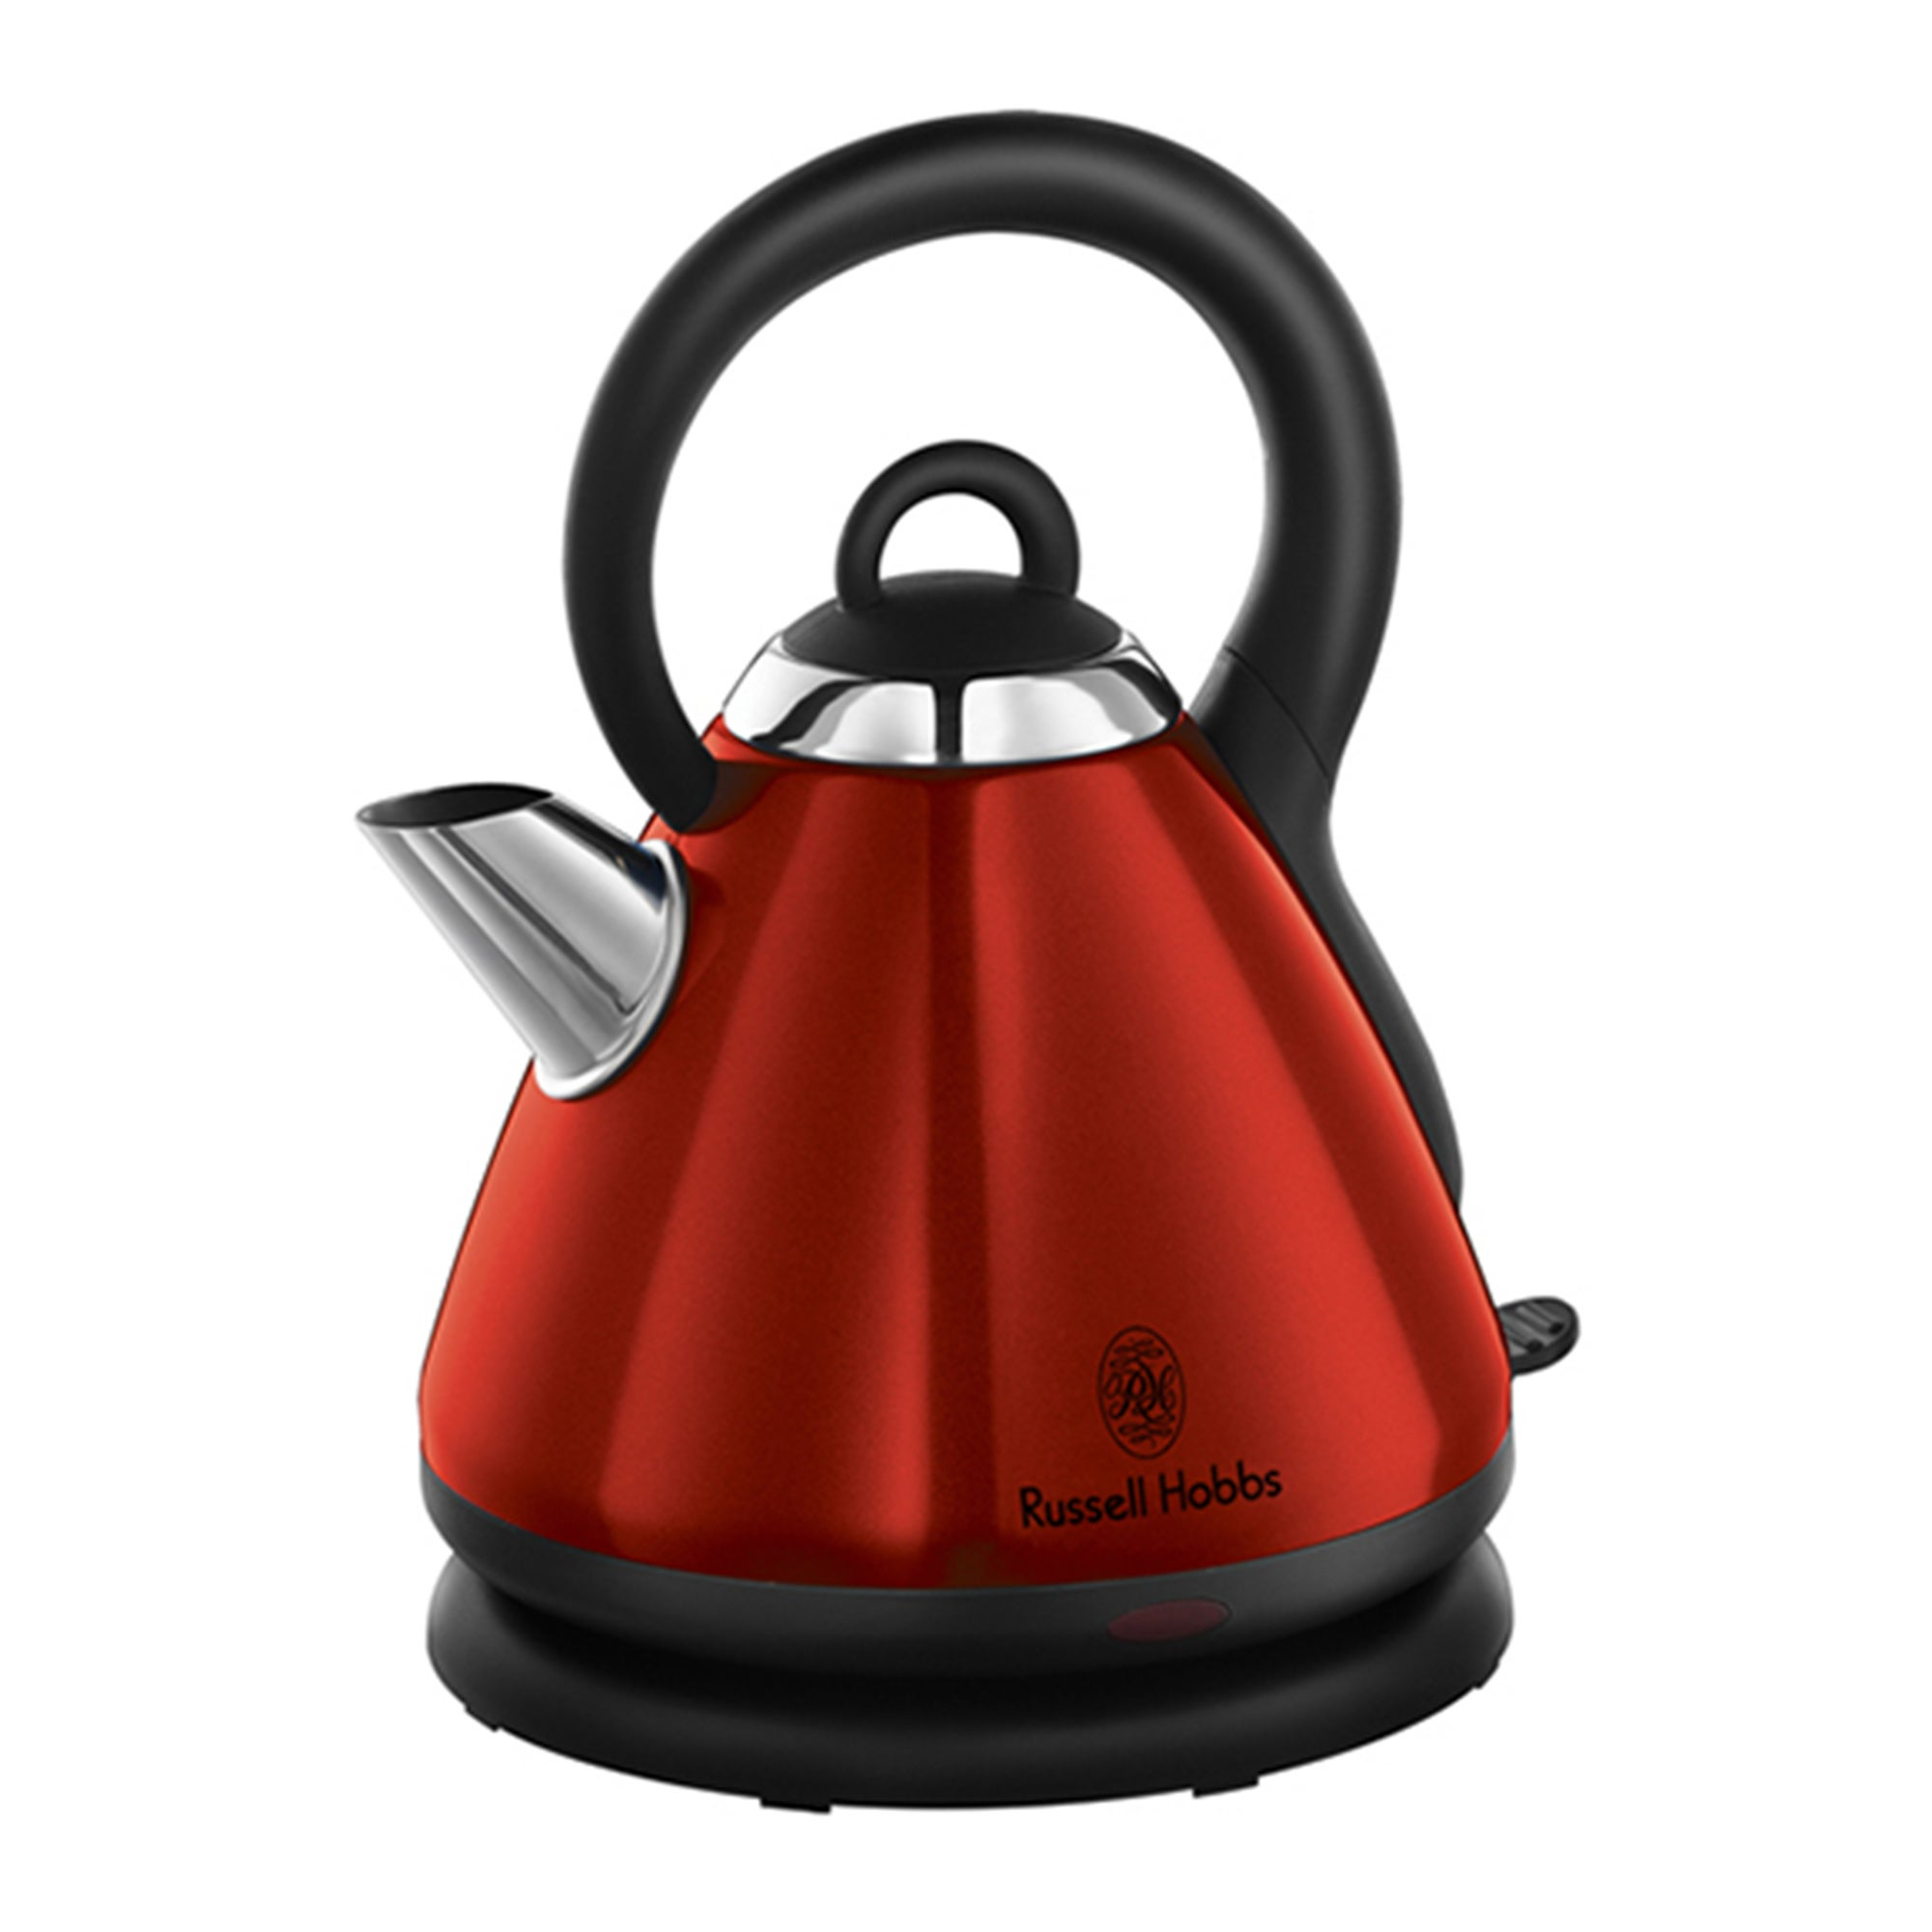 Russell Hobbs Heritage 18257 Metallic Red Kettle